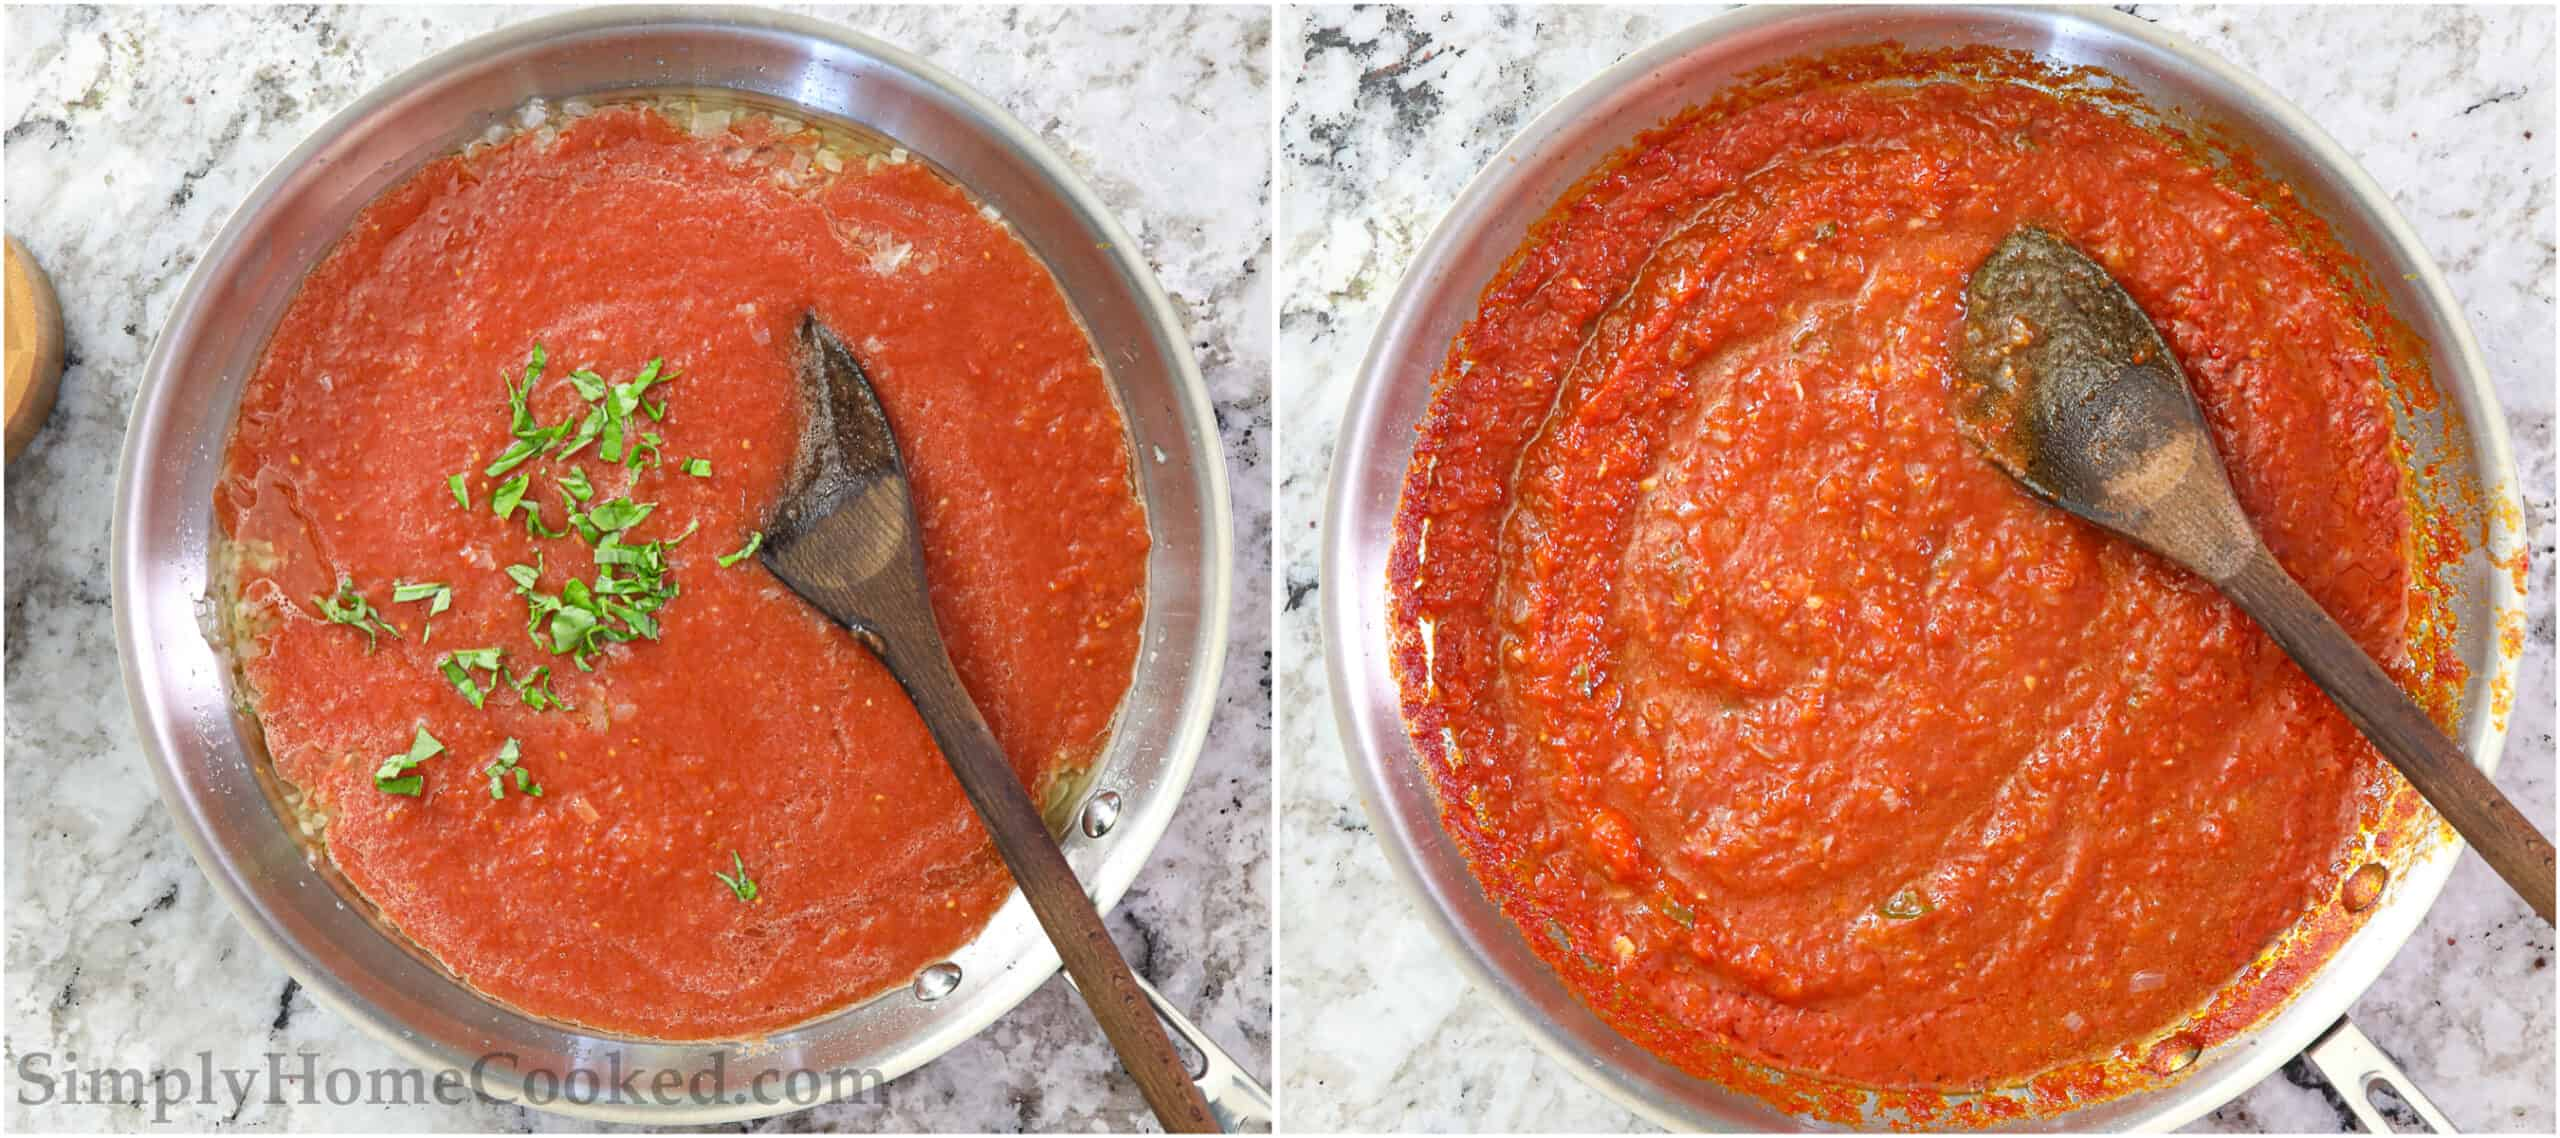 Steps to make Pasta Pomodoro sauce, including stirring in salt, sugar, and basil to the sauce with a wooden spoon and cooking.